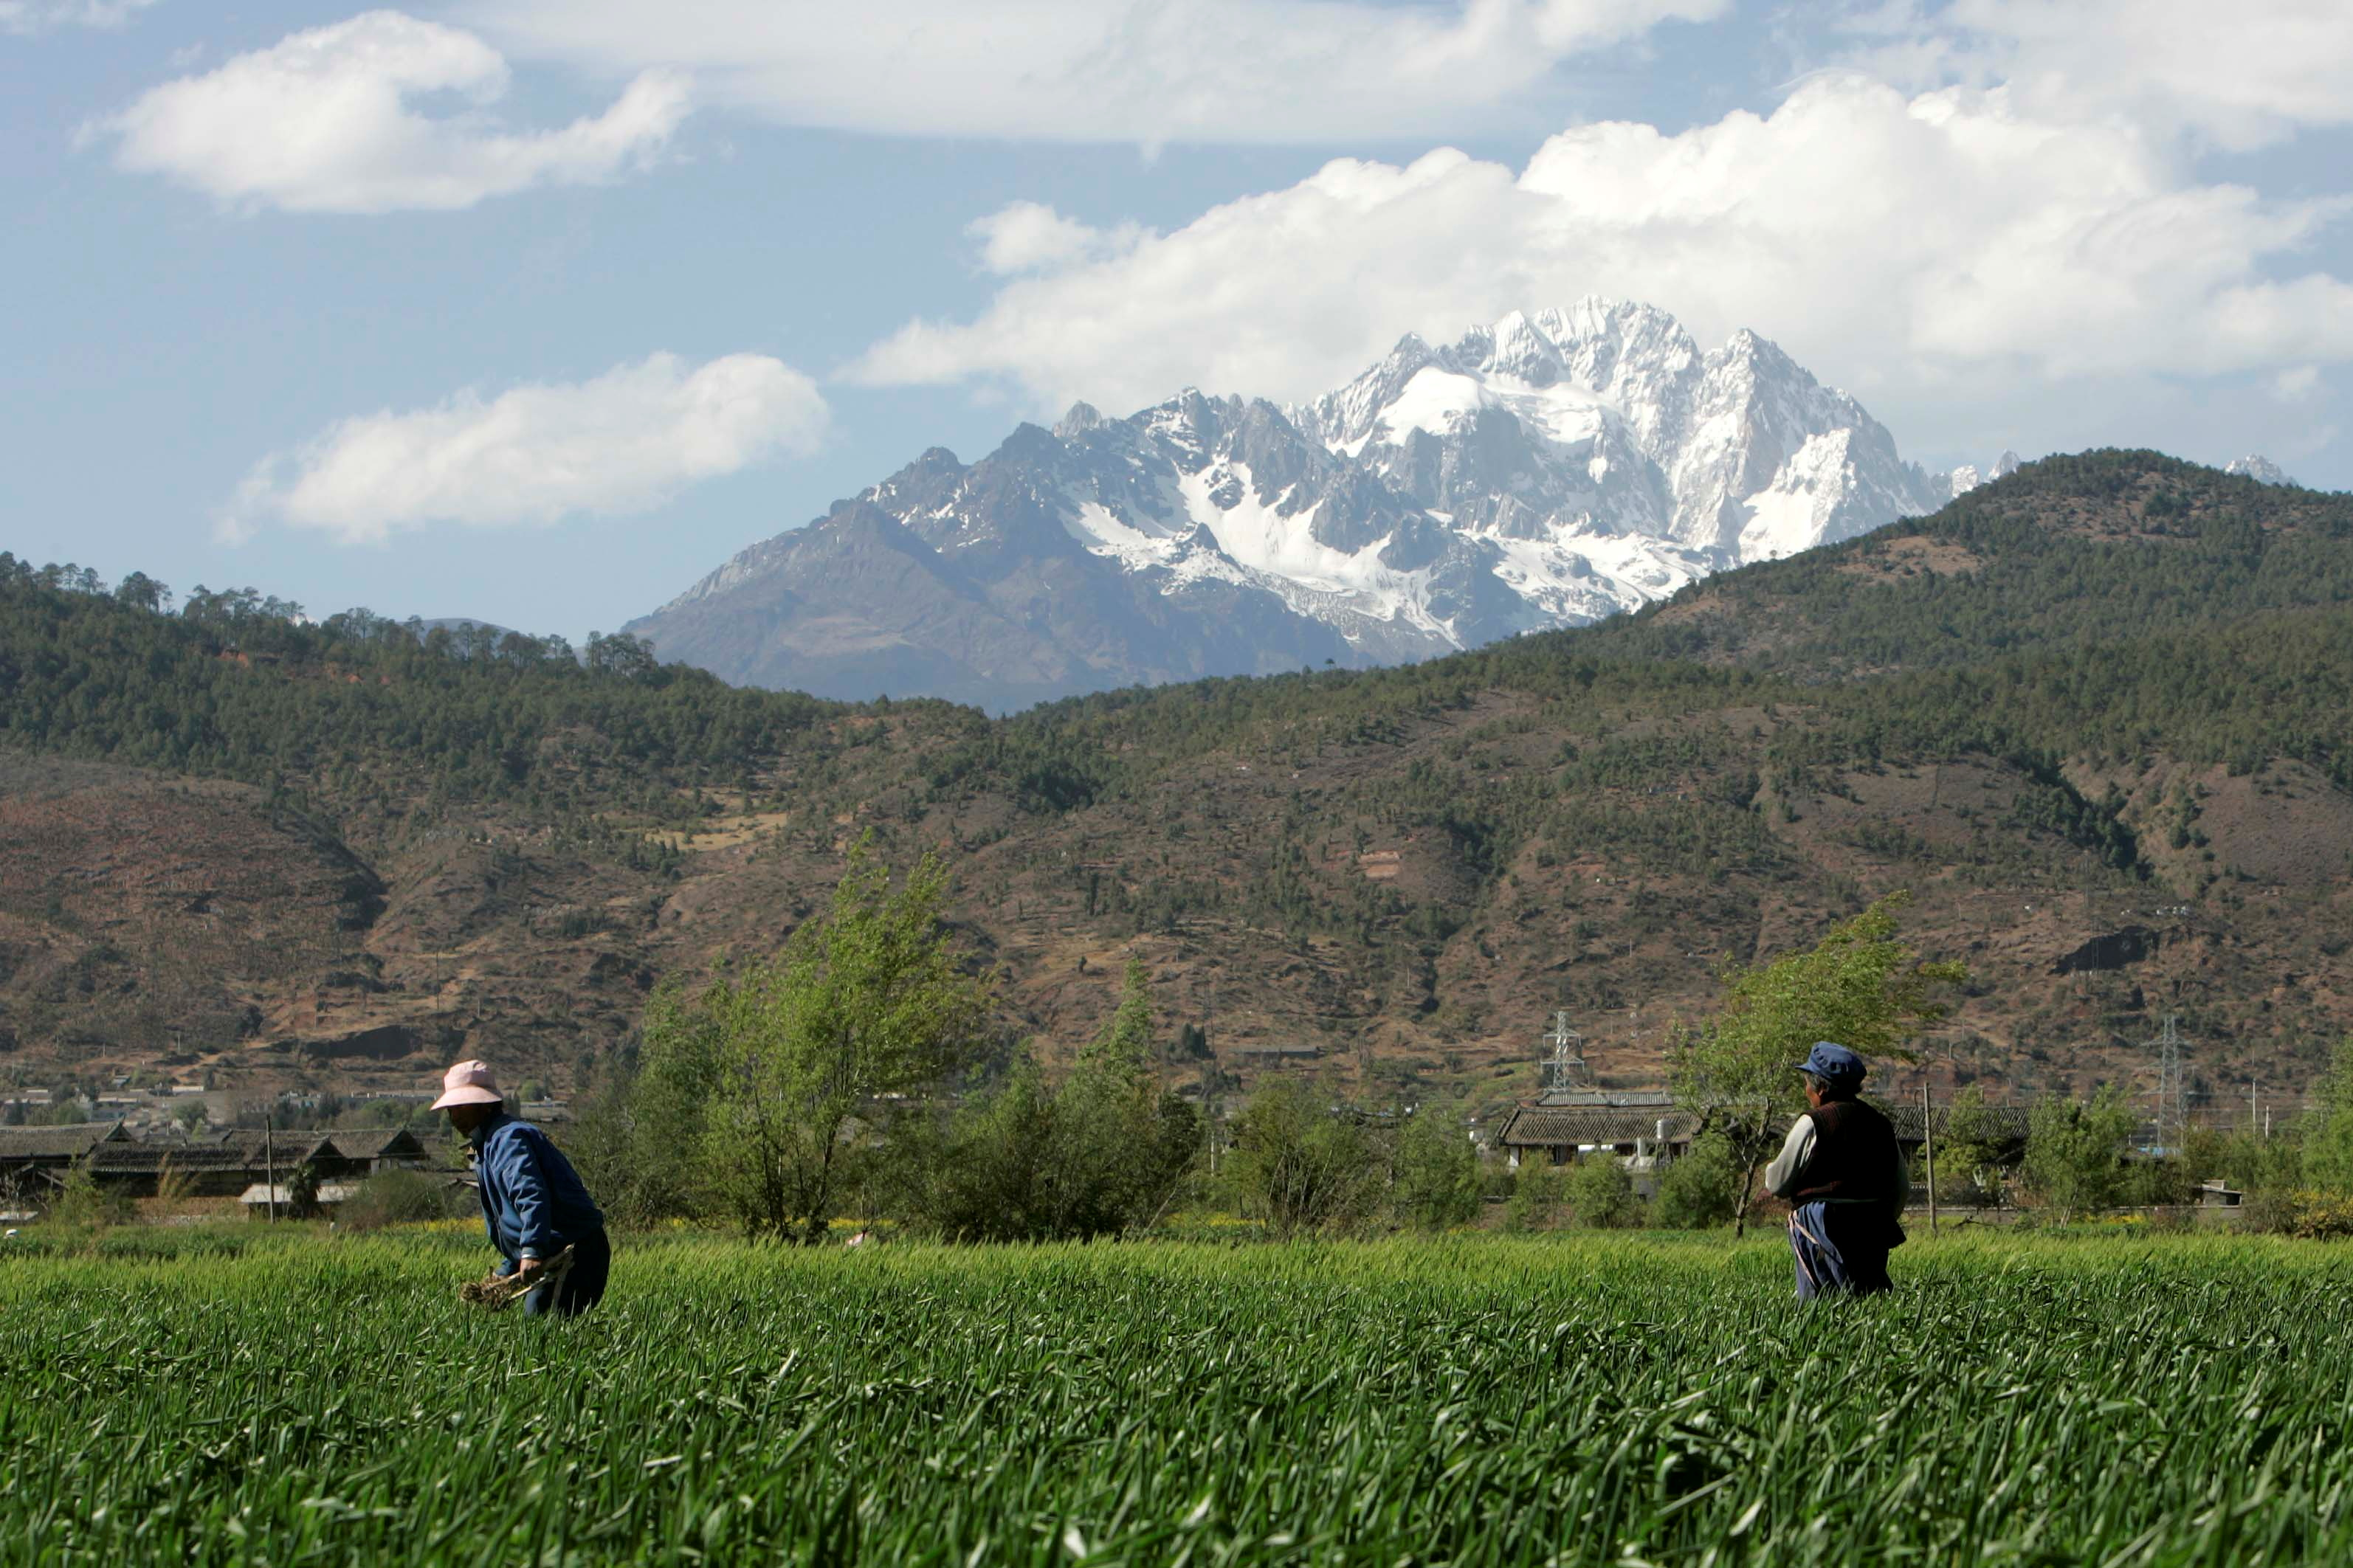 Farmer plough their field in Lijiang, Yunnan Province, April 5, 2008. REUTERS/Aly Song (CHINA)/File Photo